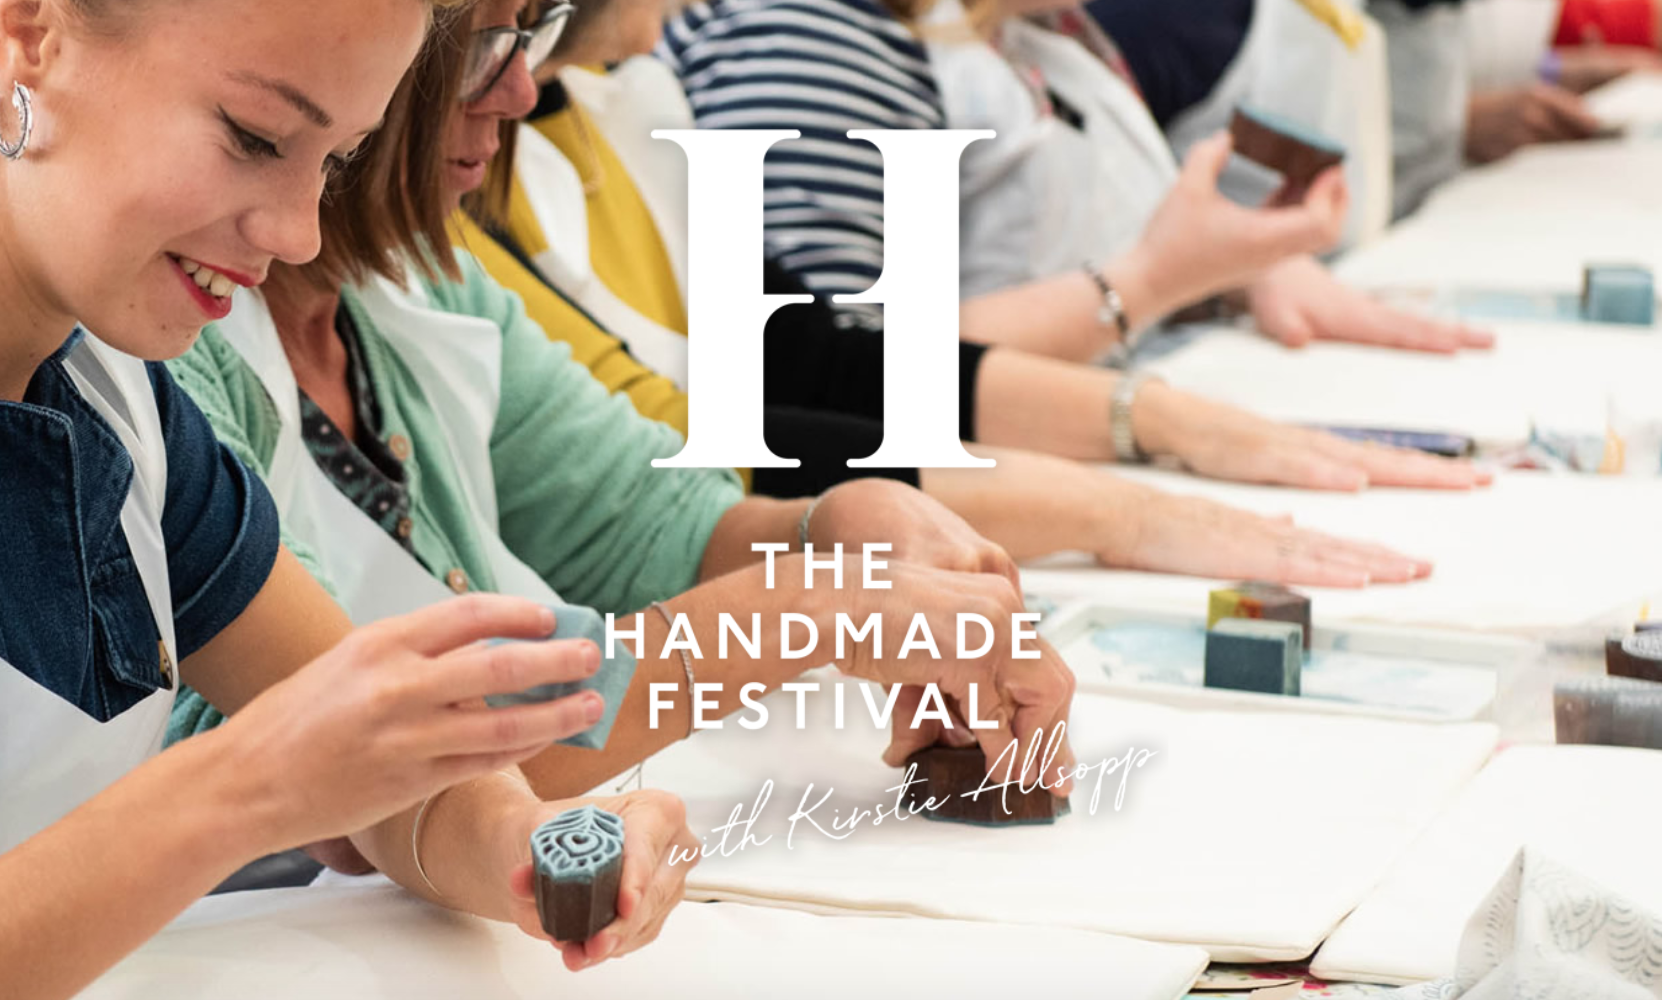 "the handmade festival - hampton court, surrey - Friday 13th - Sunday 15th September 2019Another first for us this year, we can't wait to join hosts Kirsty Alsopp and Liz Earle (my FAVE skincare brand) for the 2019 Handmade Festival!""For 2019 we are re-launching as the Handmade Festival and bringing you an inspiring collection of creative people, skilled makers and a vast array of what is celebrated as handmade. Whether you wish to learn a new skill in one of our workshops or have a great day out shopping from over 200 designer makers the Festival is a fantastic day out for all. We champion handmade and hand-pick the individuals who come to showcase their incredible products.""Join us there - grab your tickets here."